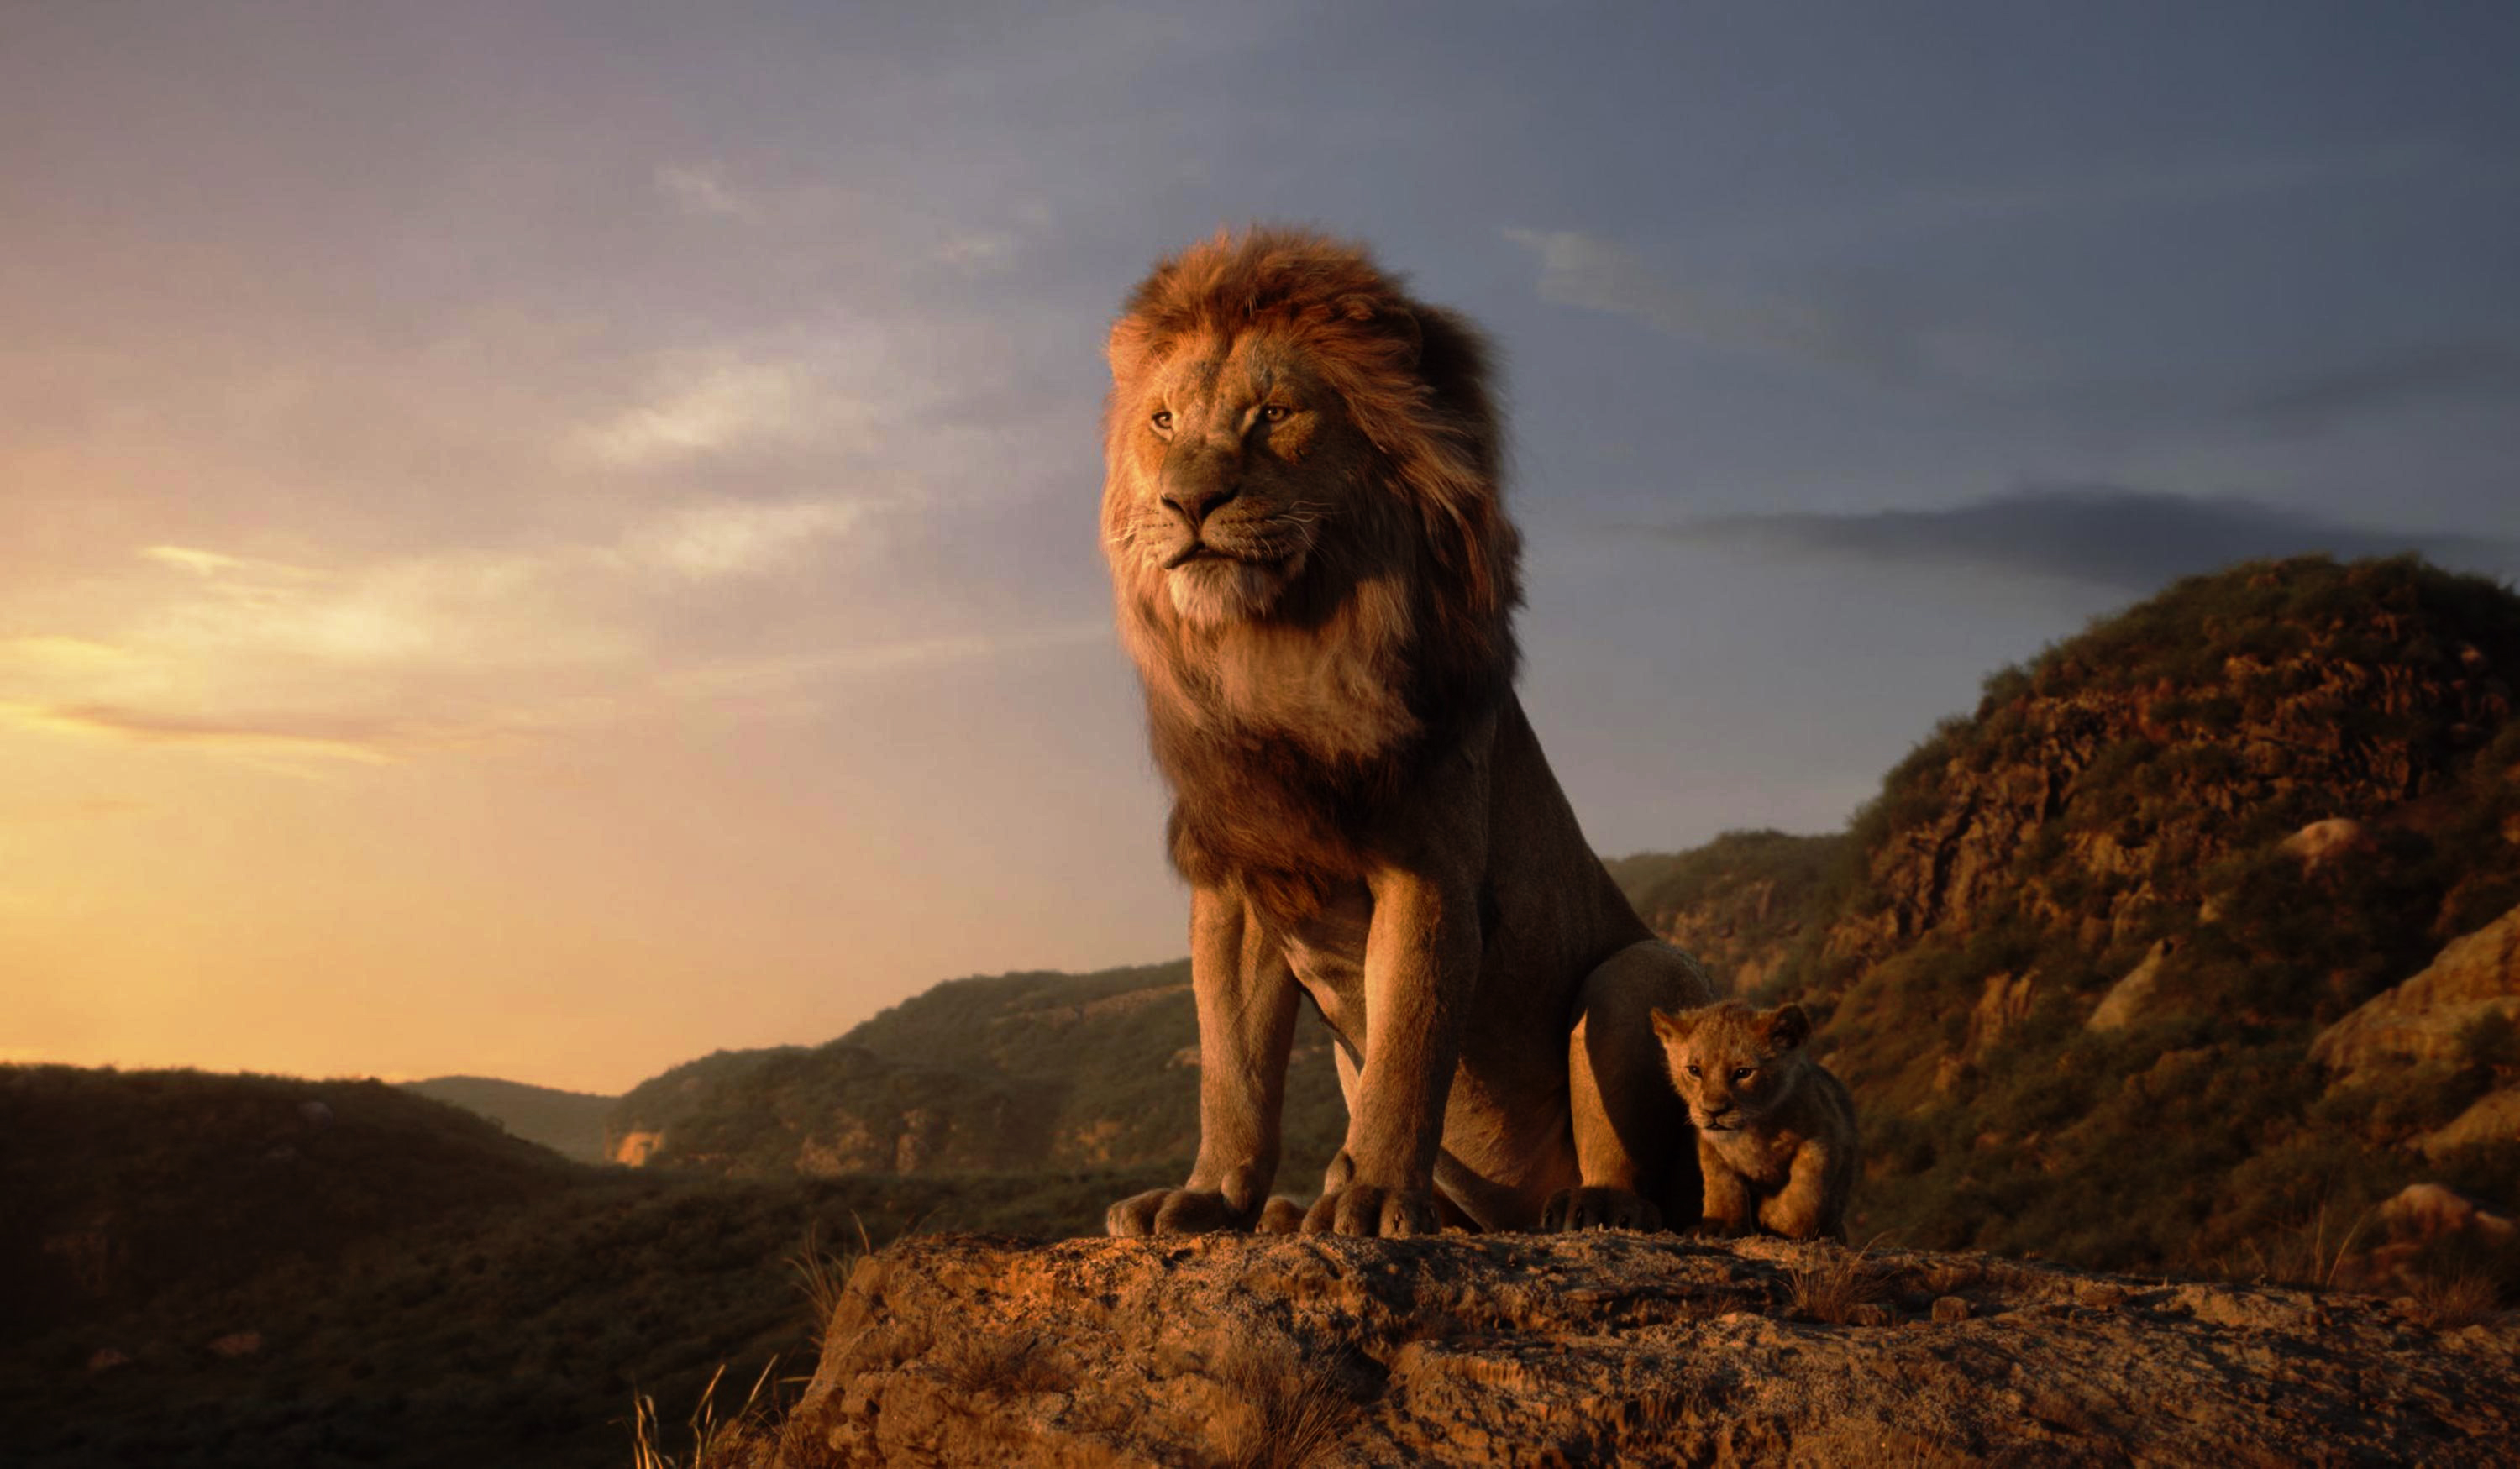 1920x1080 The Lion King 4k Laptop Full Hd 1080p Hd 4k Wallpapers